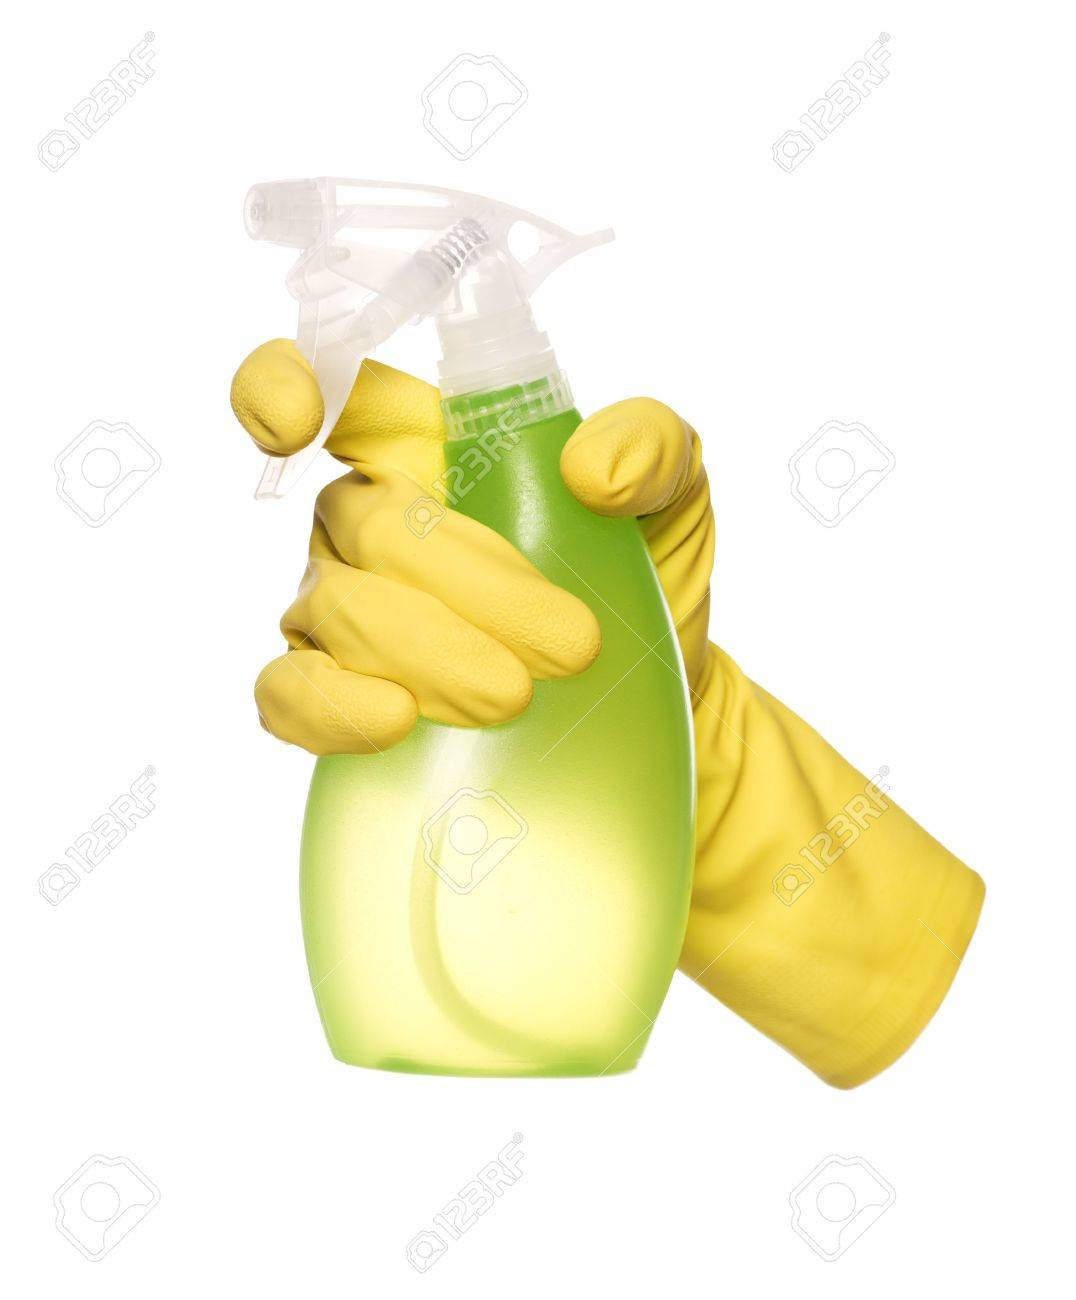 Yellow Protection Glove holding a Spray Bottle Stock Photo - 5375434